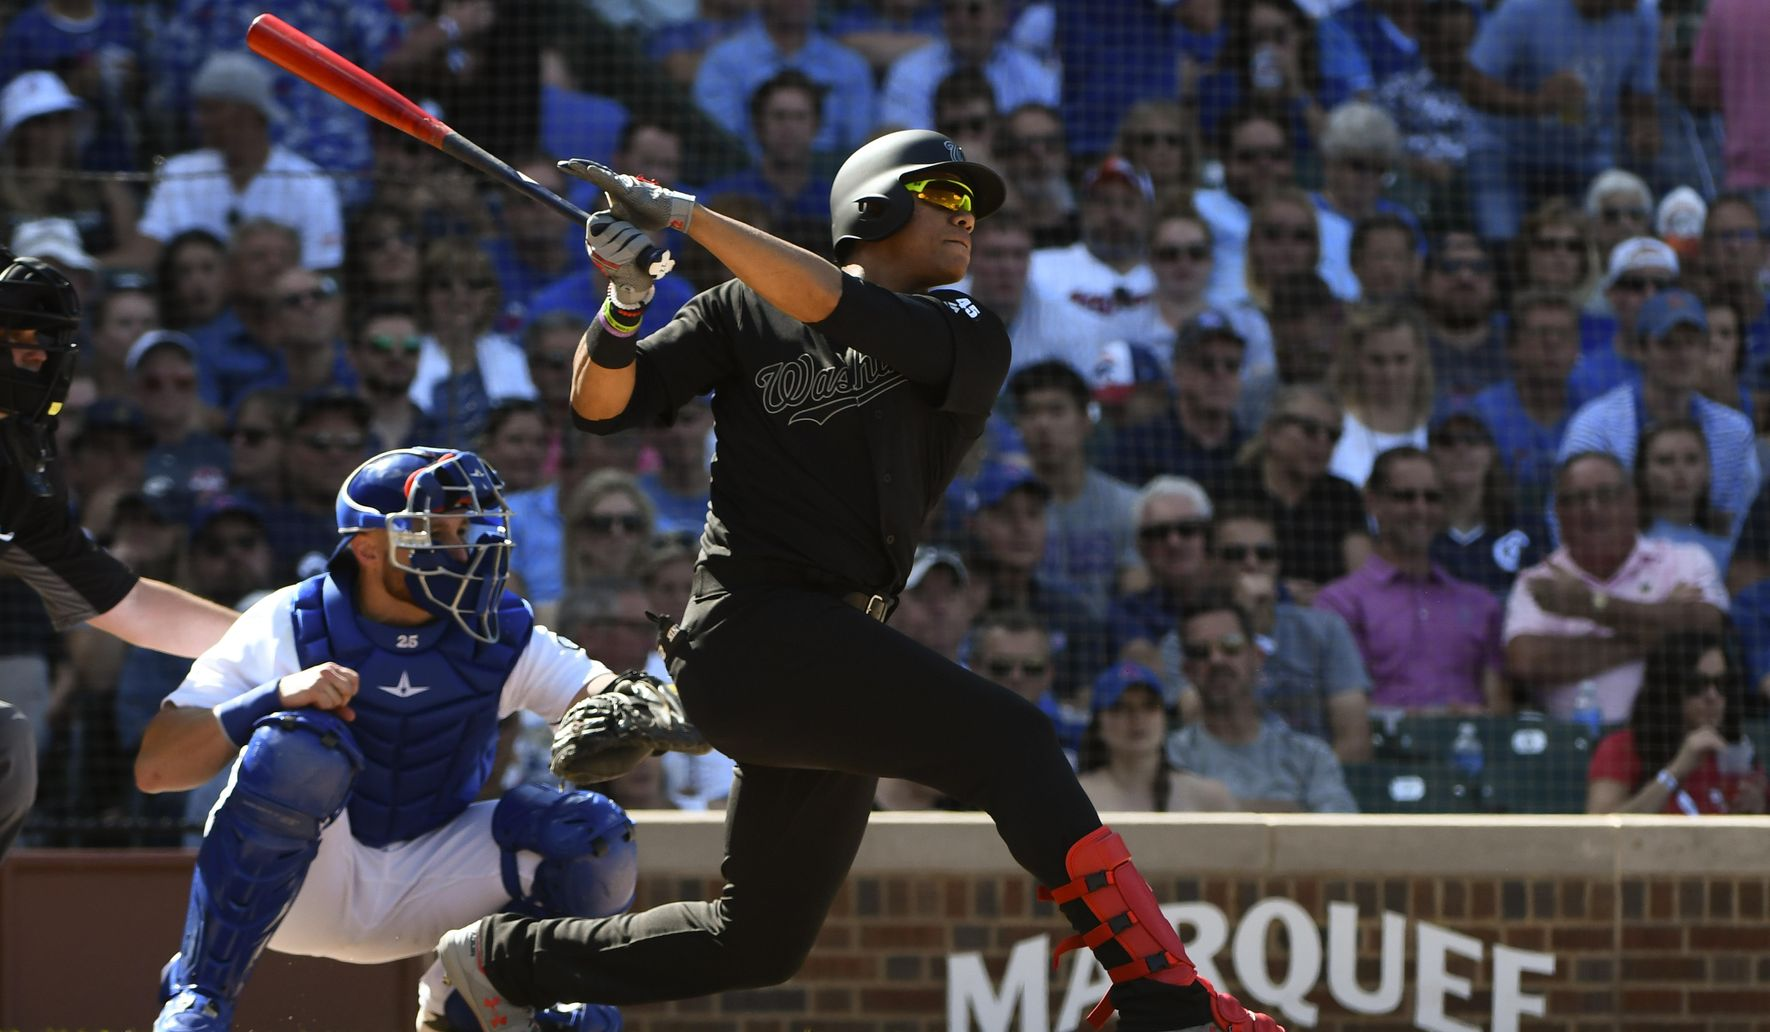 Sánchez blanks Cubs, Nats keep slugging in 9-3 win